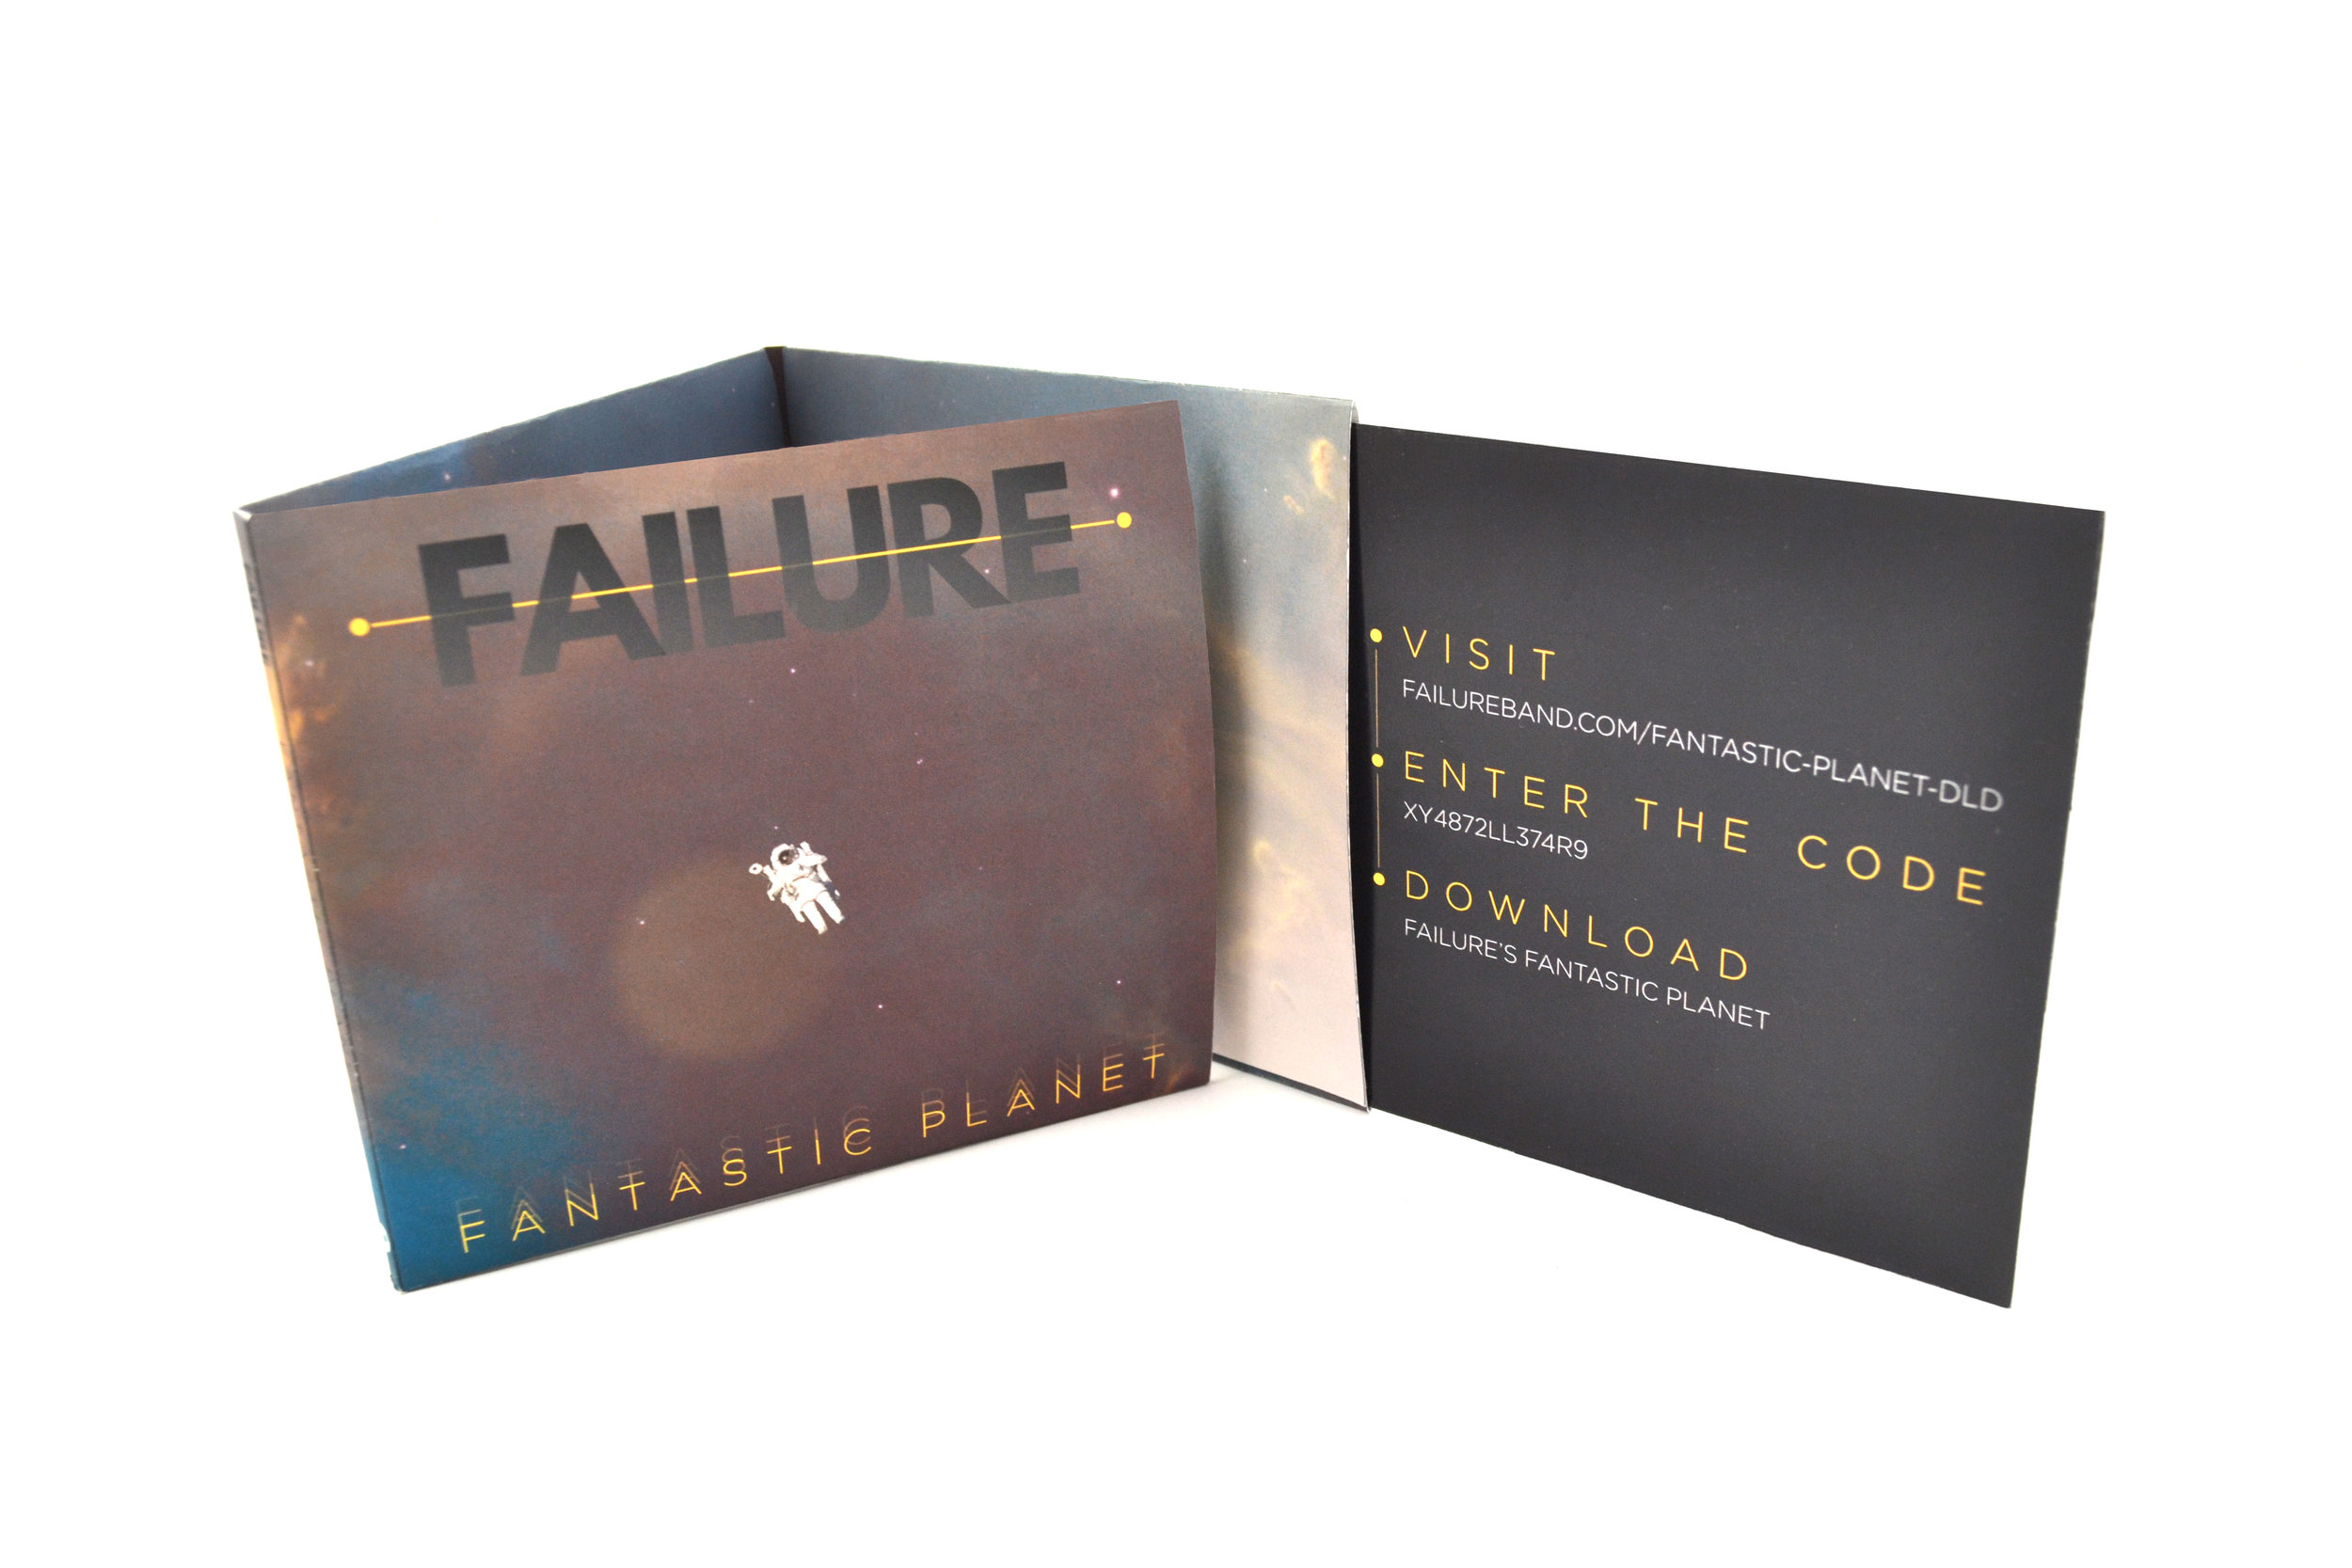 3failure_download_card.jpg